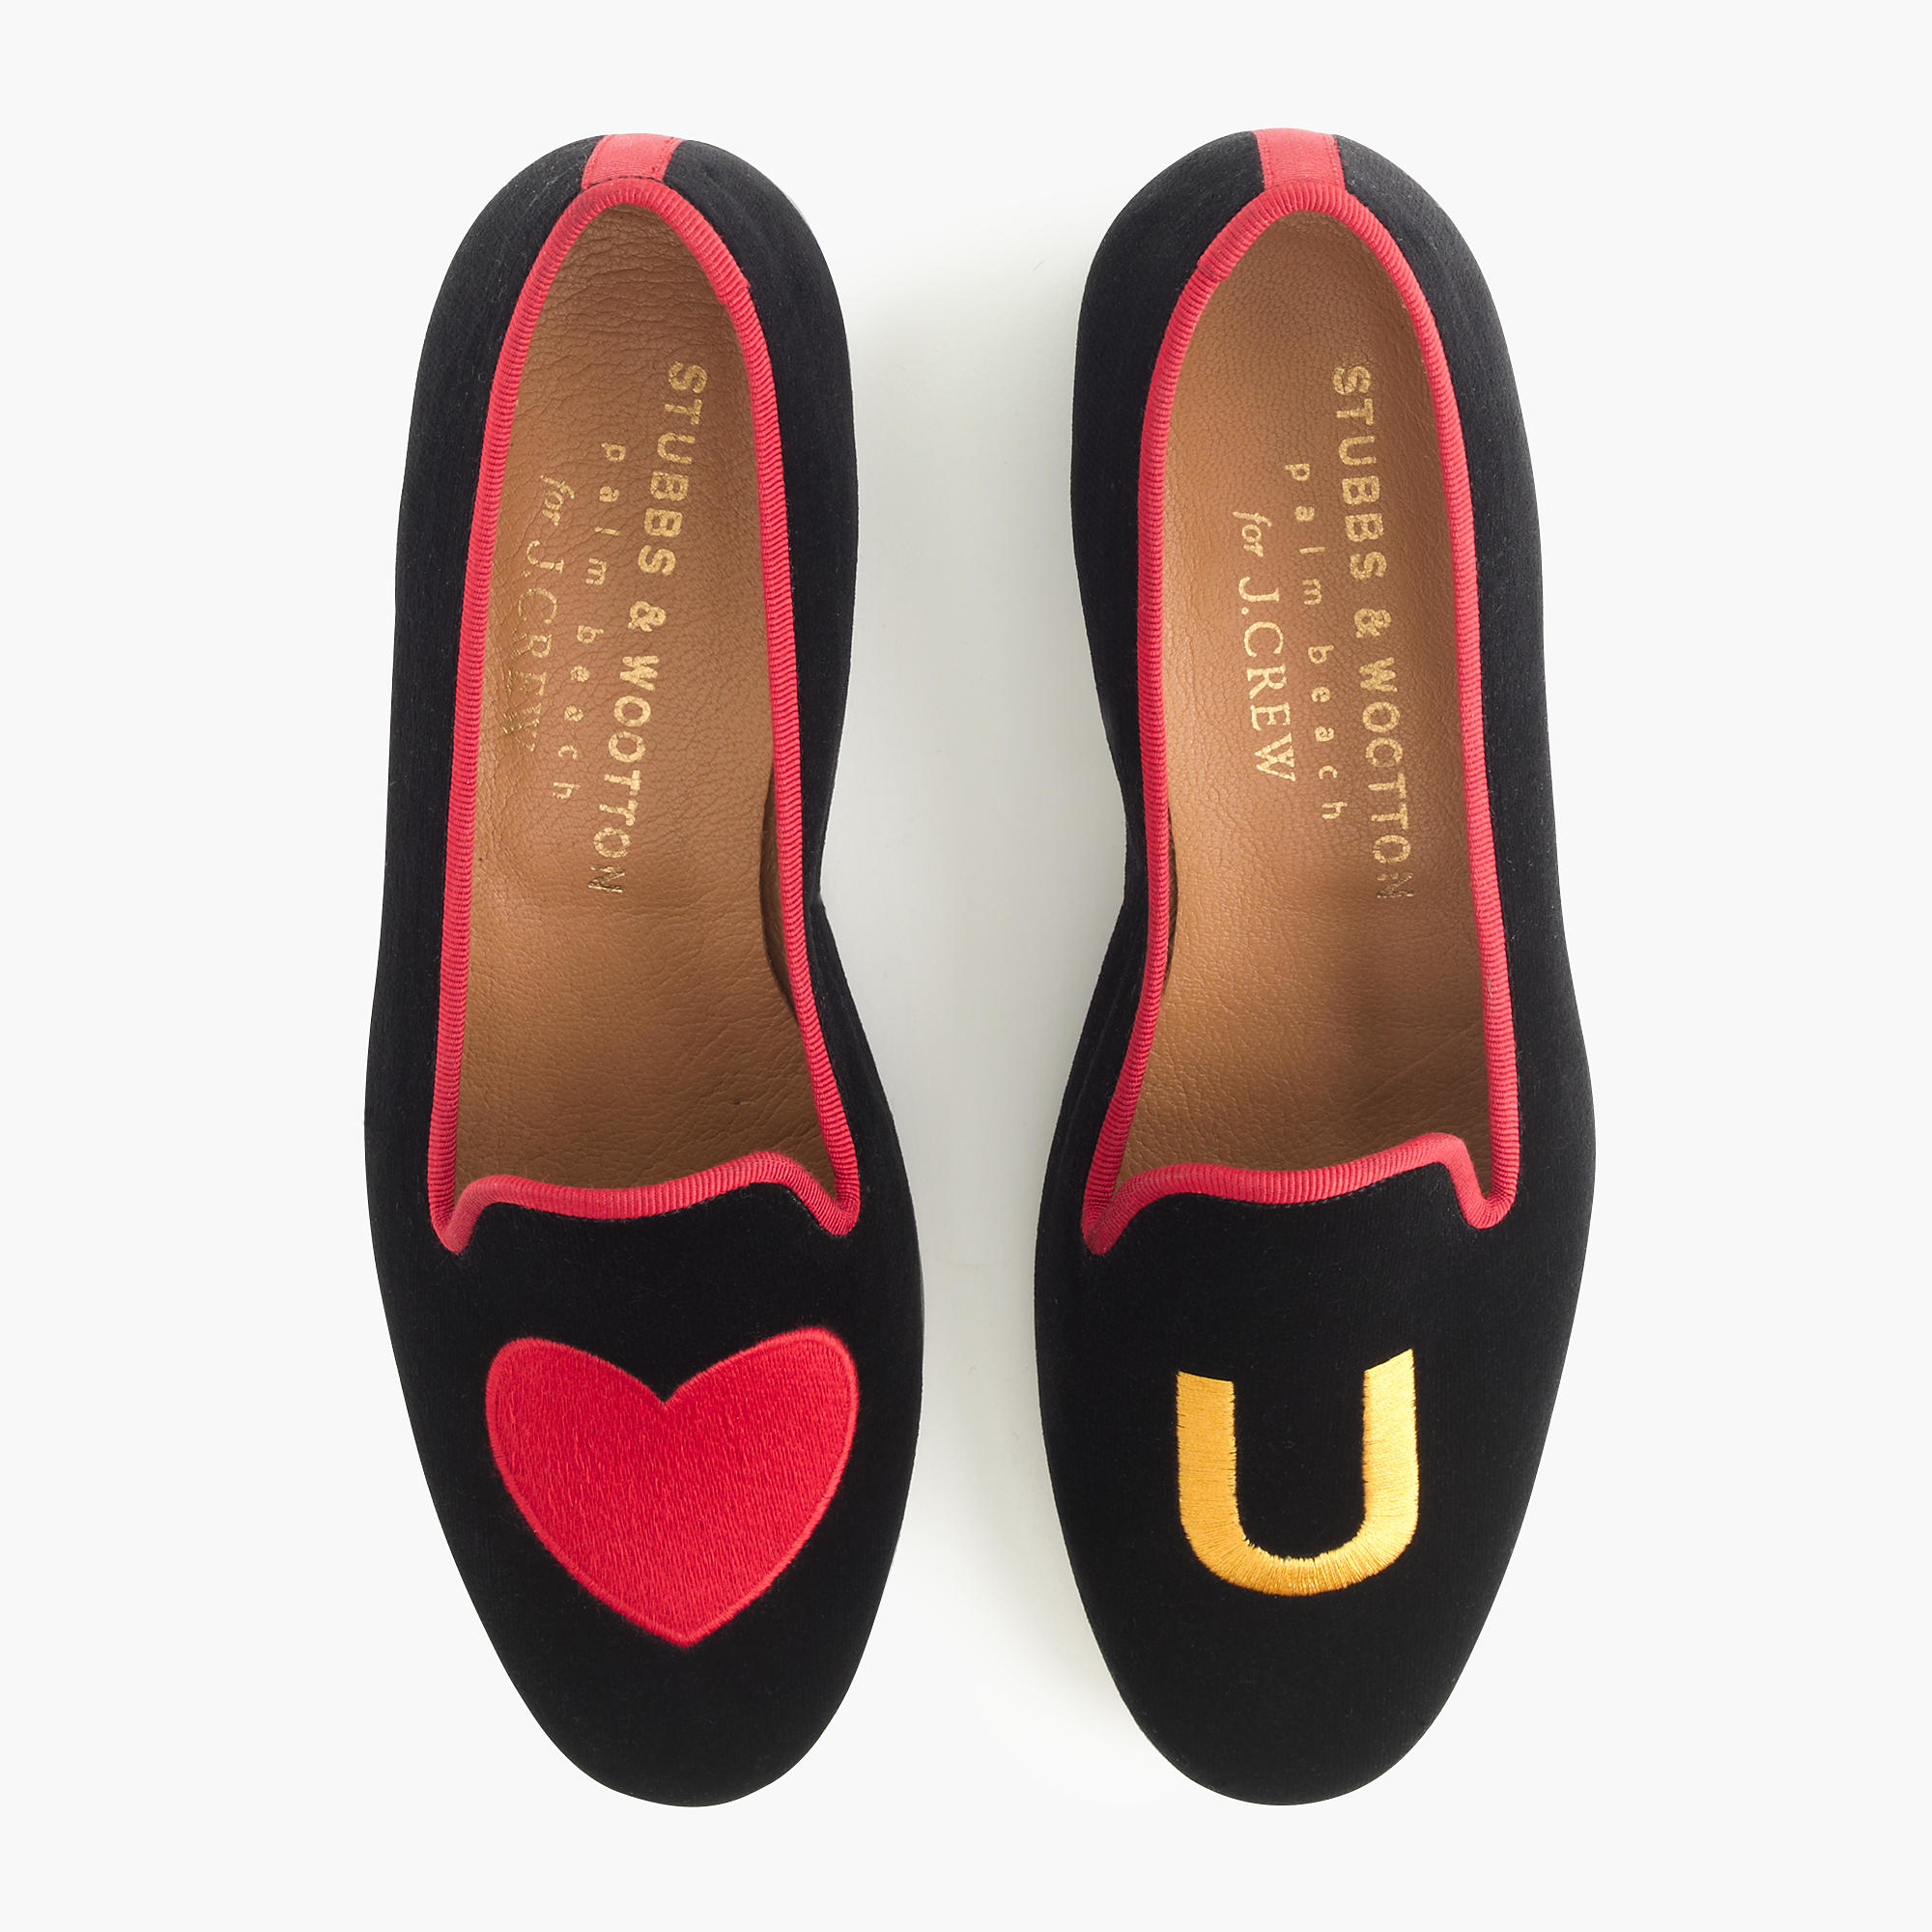 Stubbs wootton velvet slippers in black lyst for J crew bedroom slippers